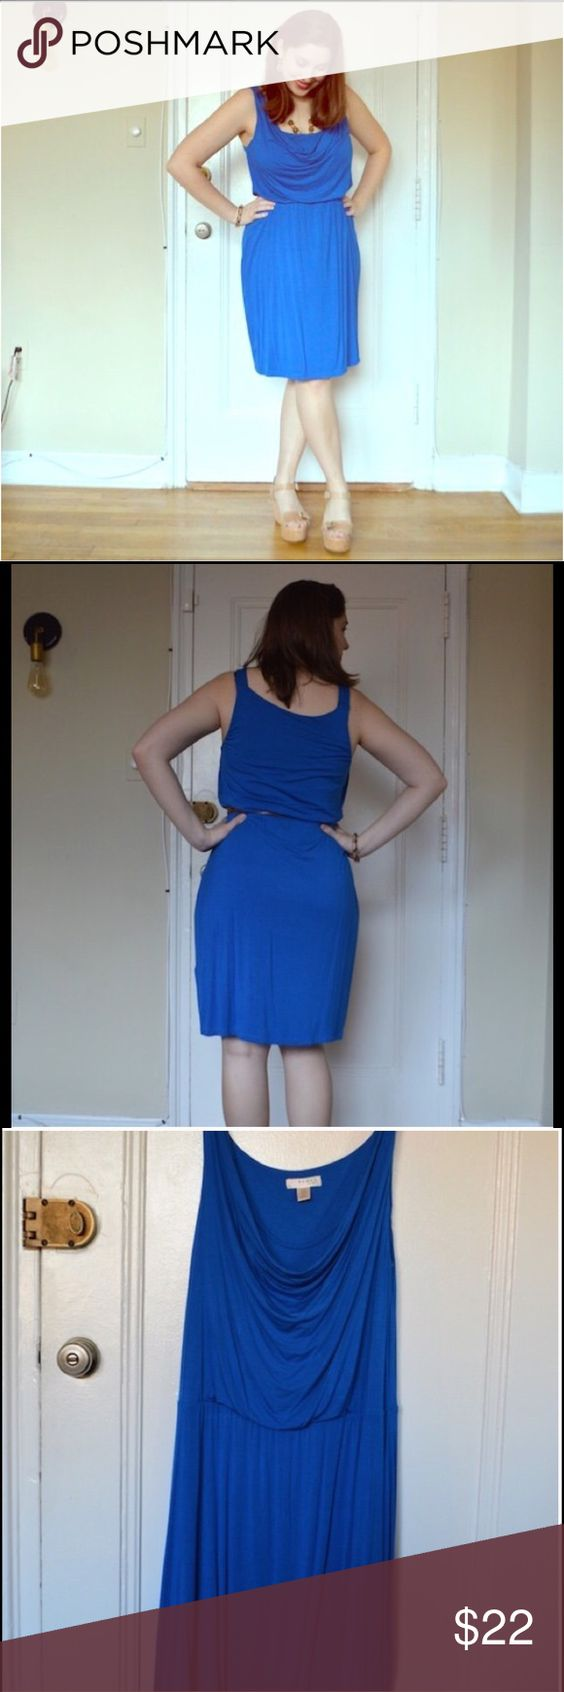 Kenar  dress size 1x in bright blue Bright blue dress made of drapery jersey fabric, hits at or right above knee.  Sleeveless.  Perfect fall color. Kenar Dresses Midi